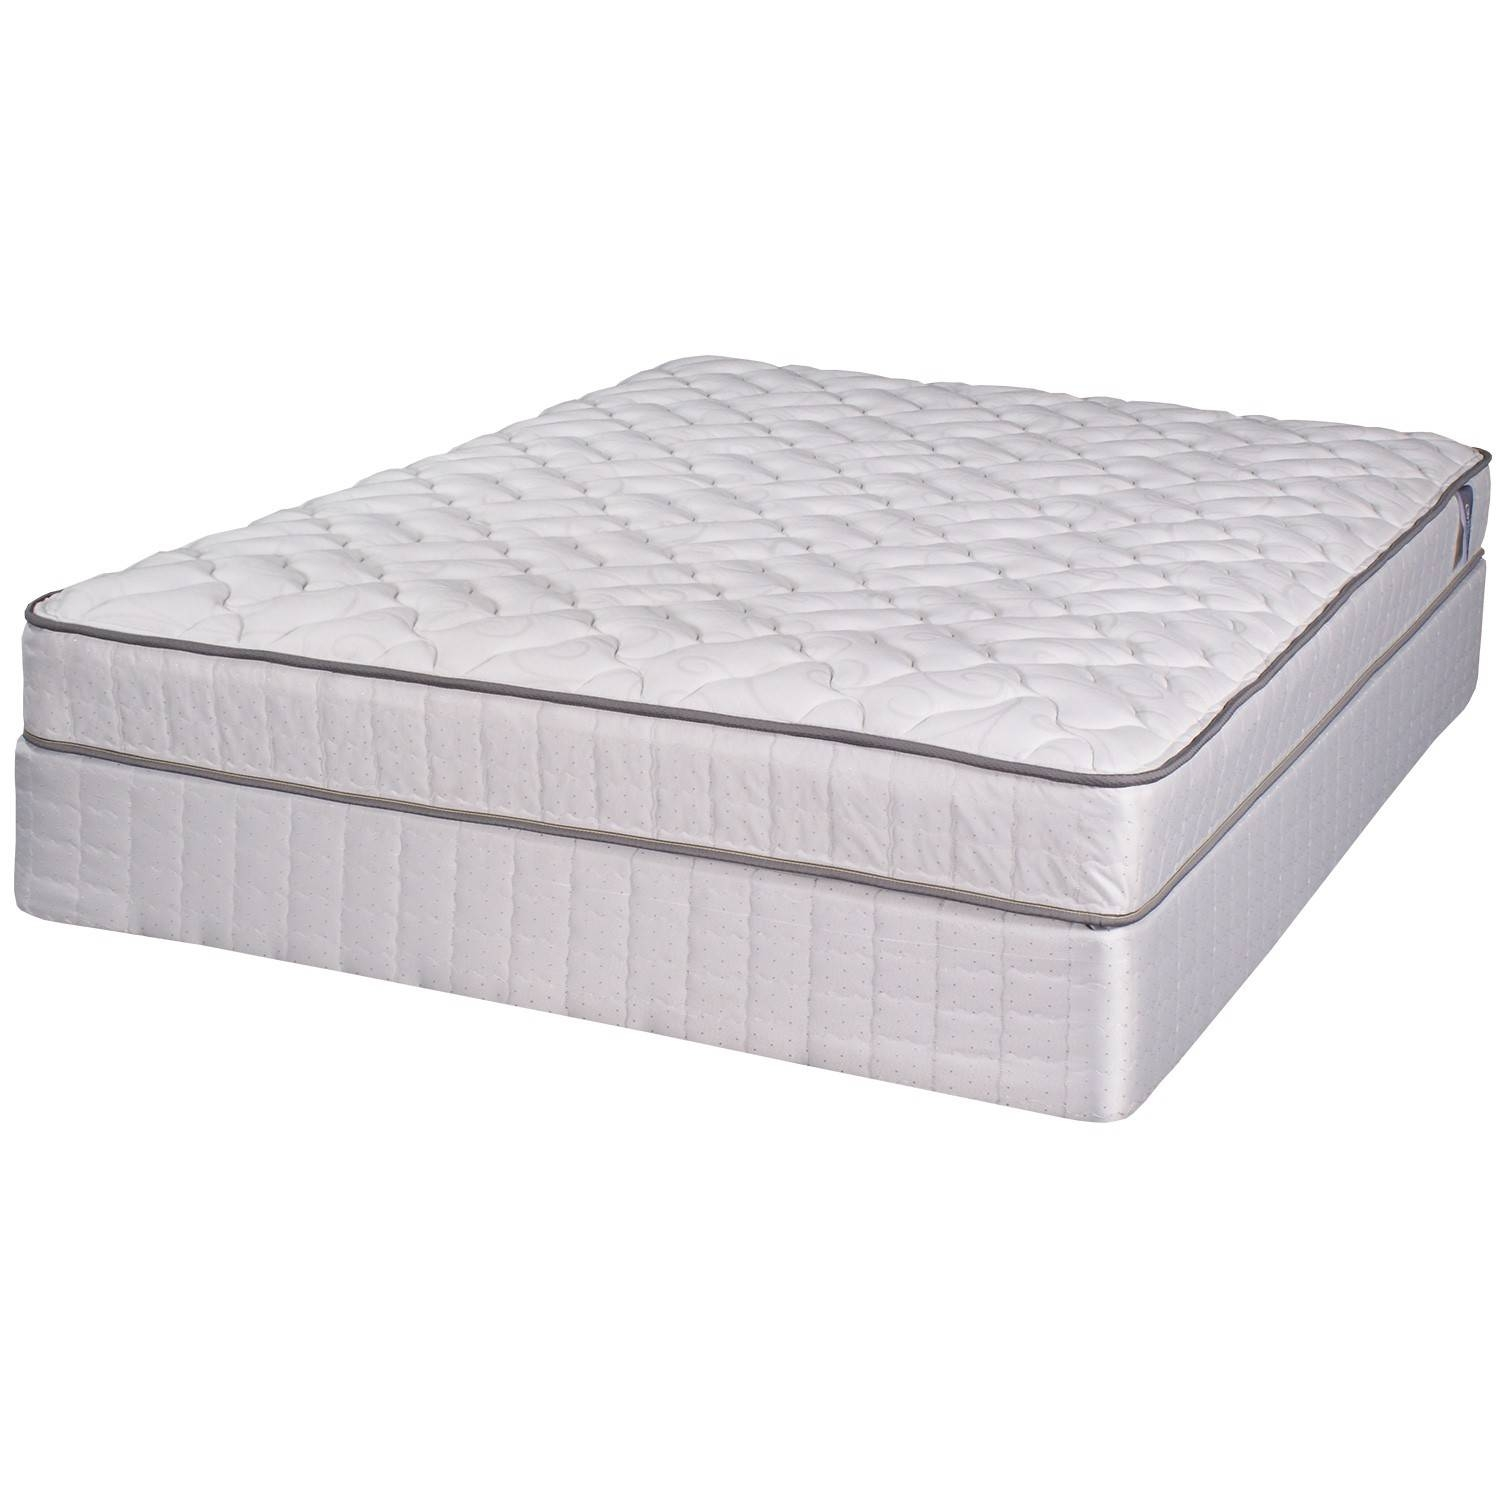 co set mattresses size sets serta free sale pillow queen top extravagant thinkpawsitive on mattress shipping